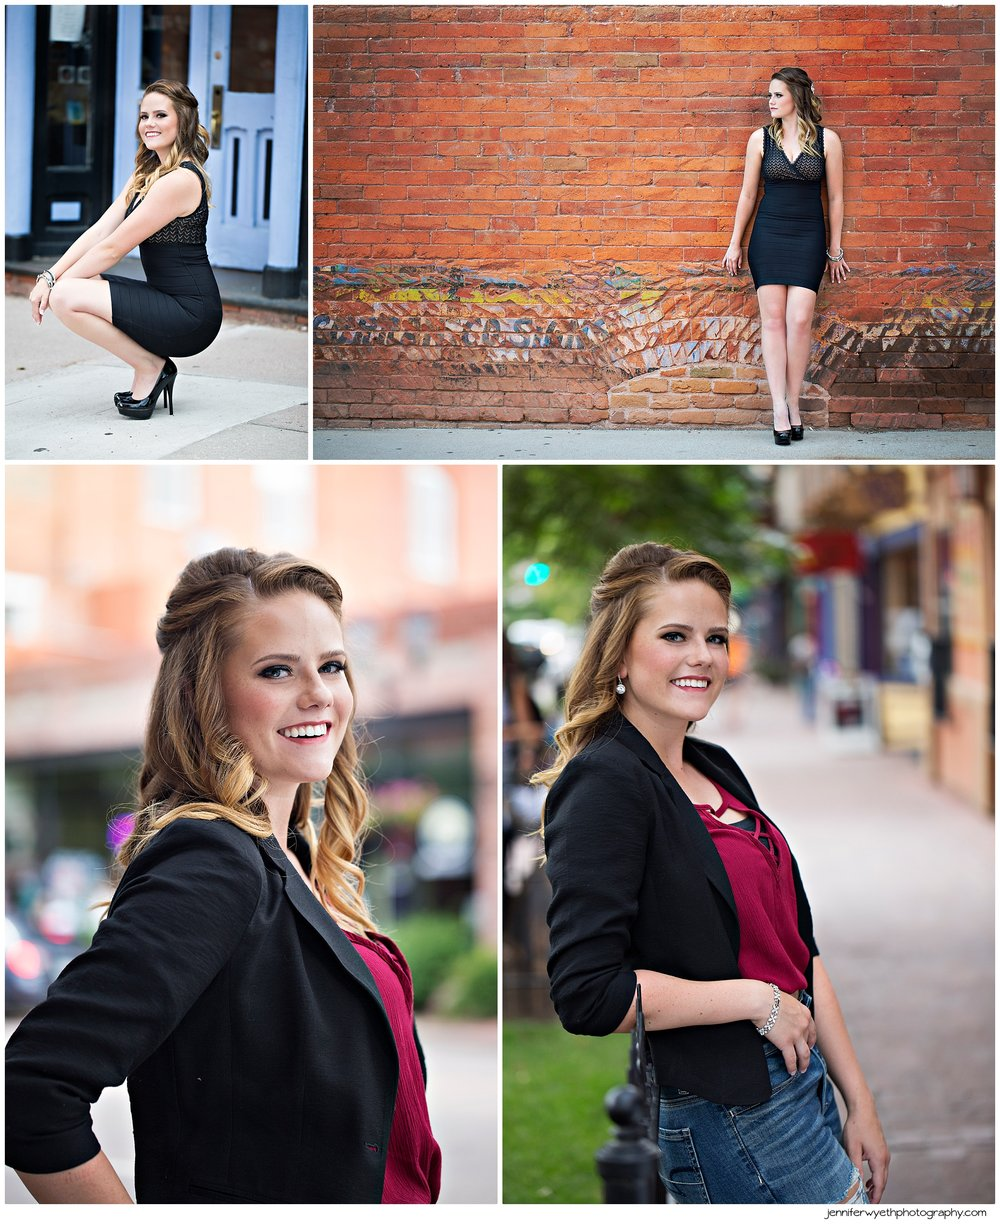 Jennifer-Wyeth-photography-senior-pictures-colorado-springs-photographer_0163.jpg